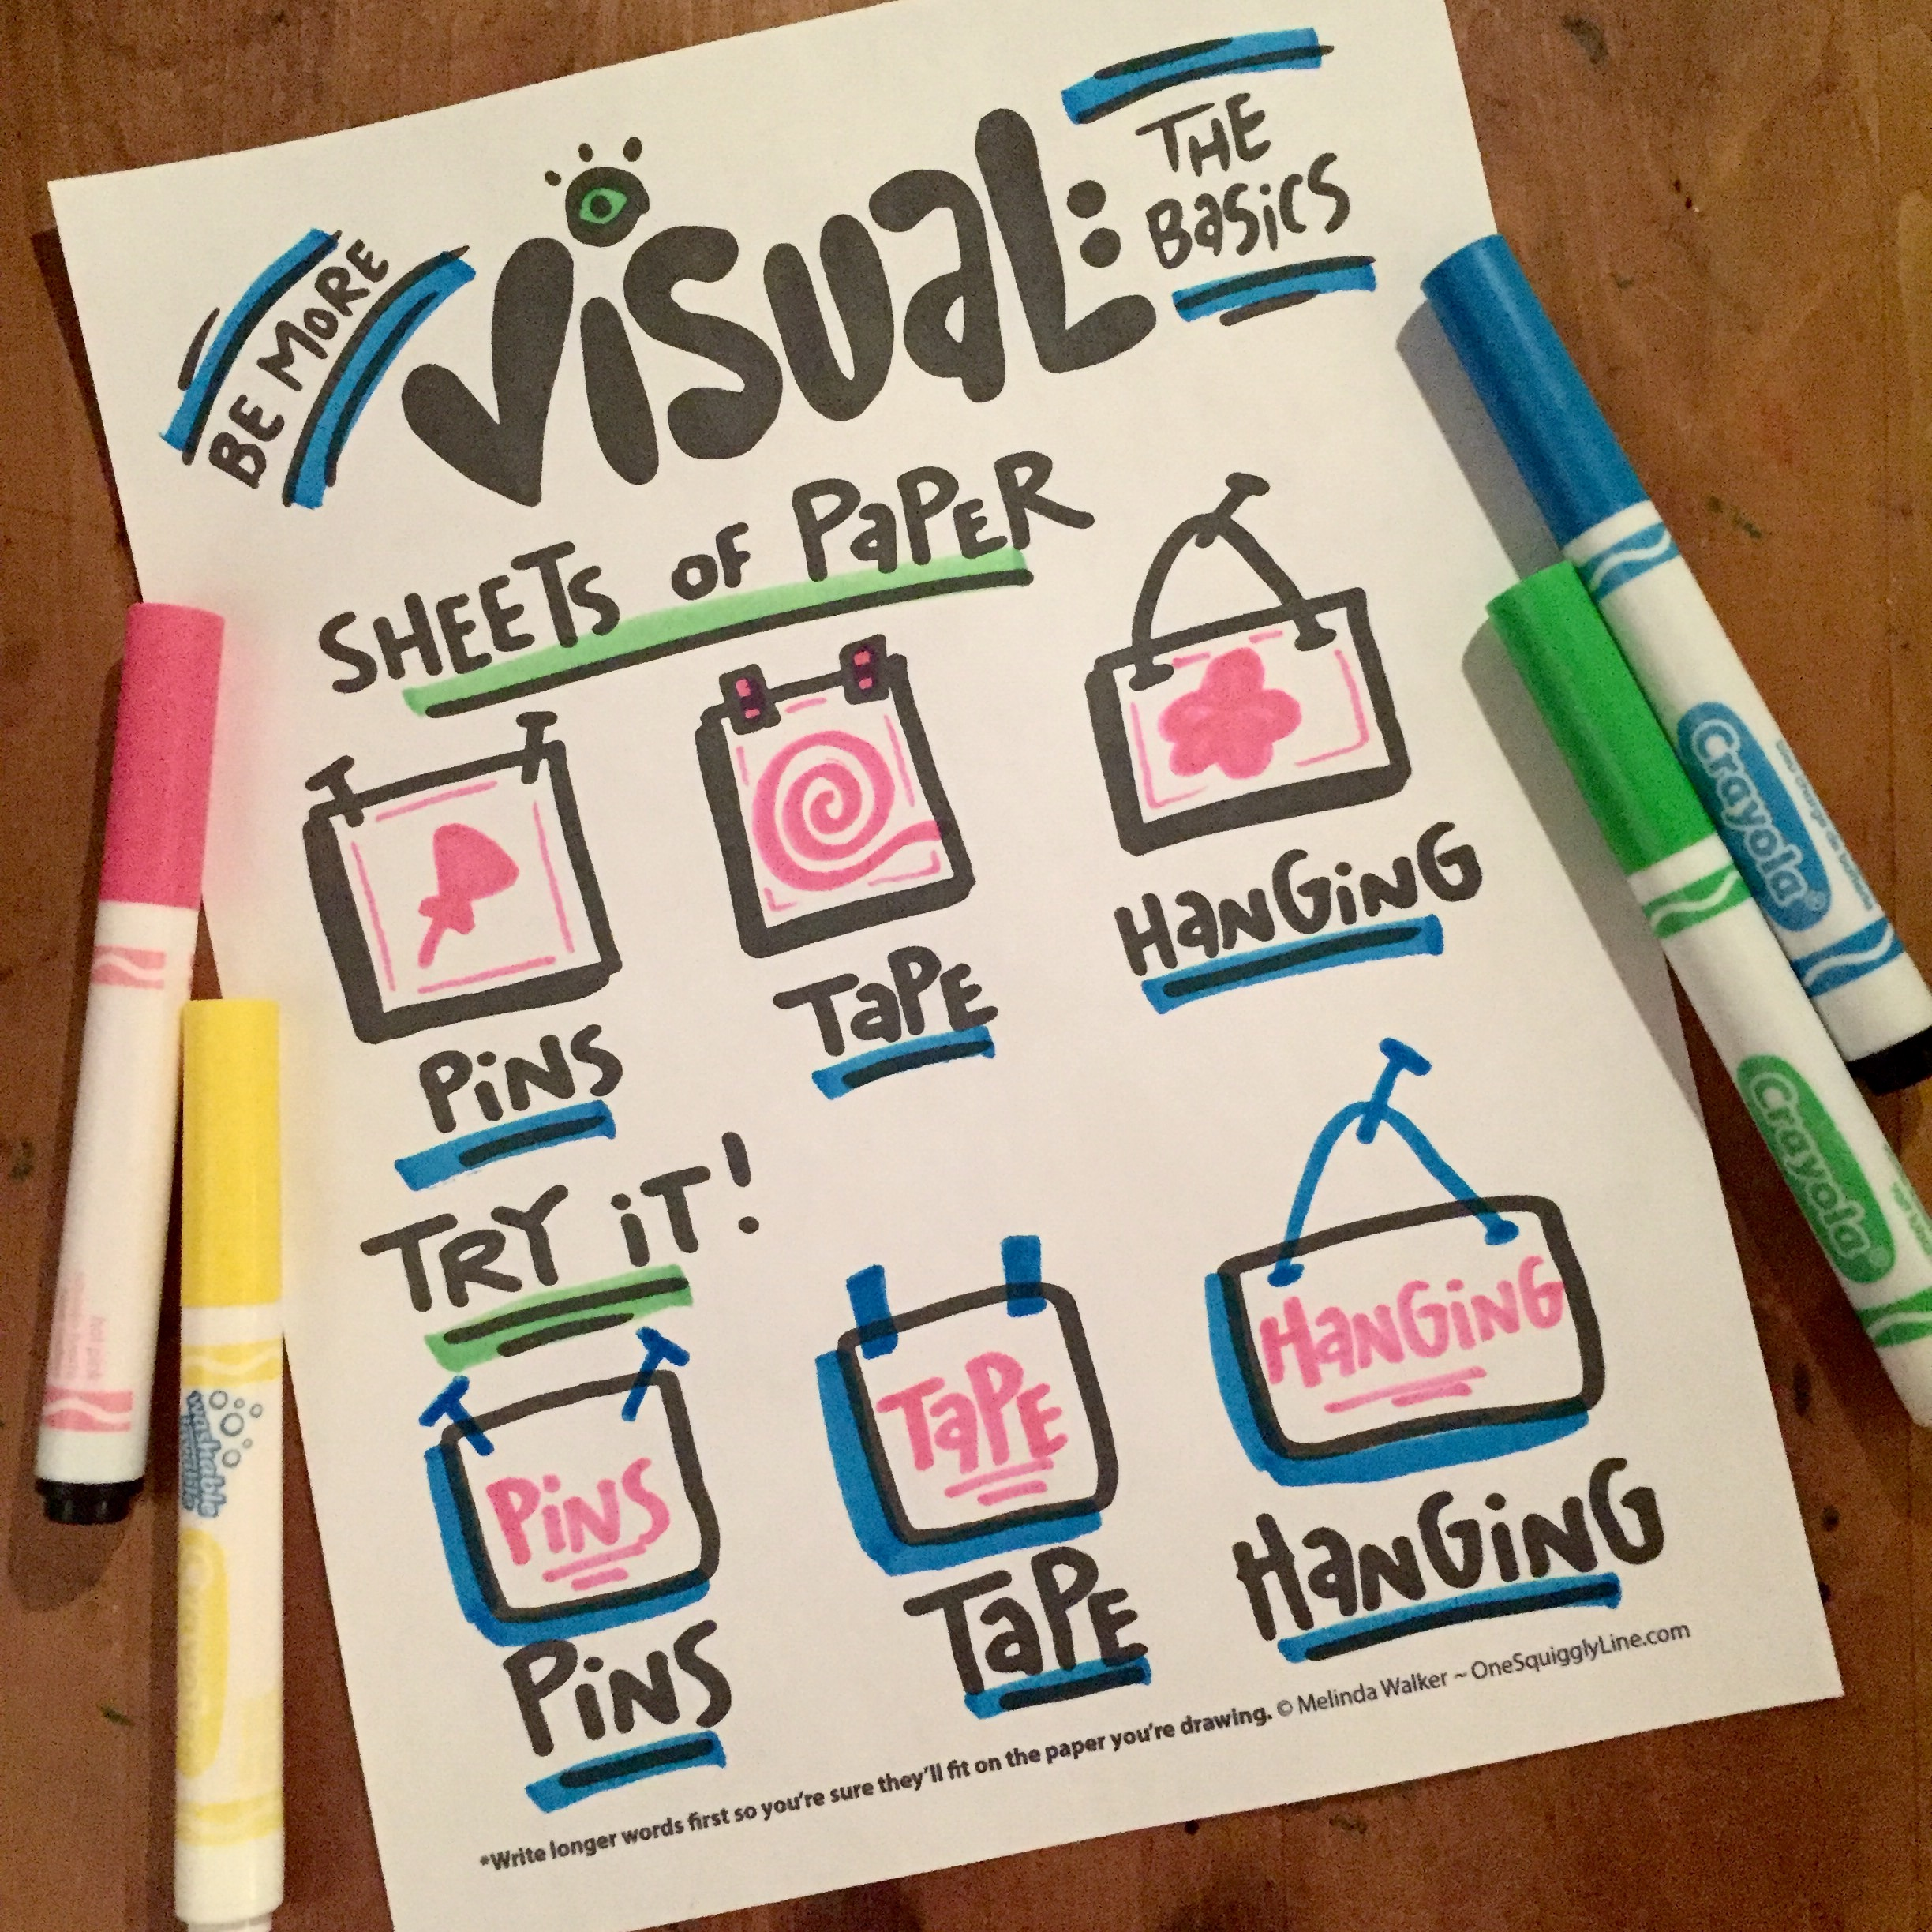 Be More Visual: Sheets of Paper